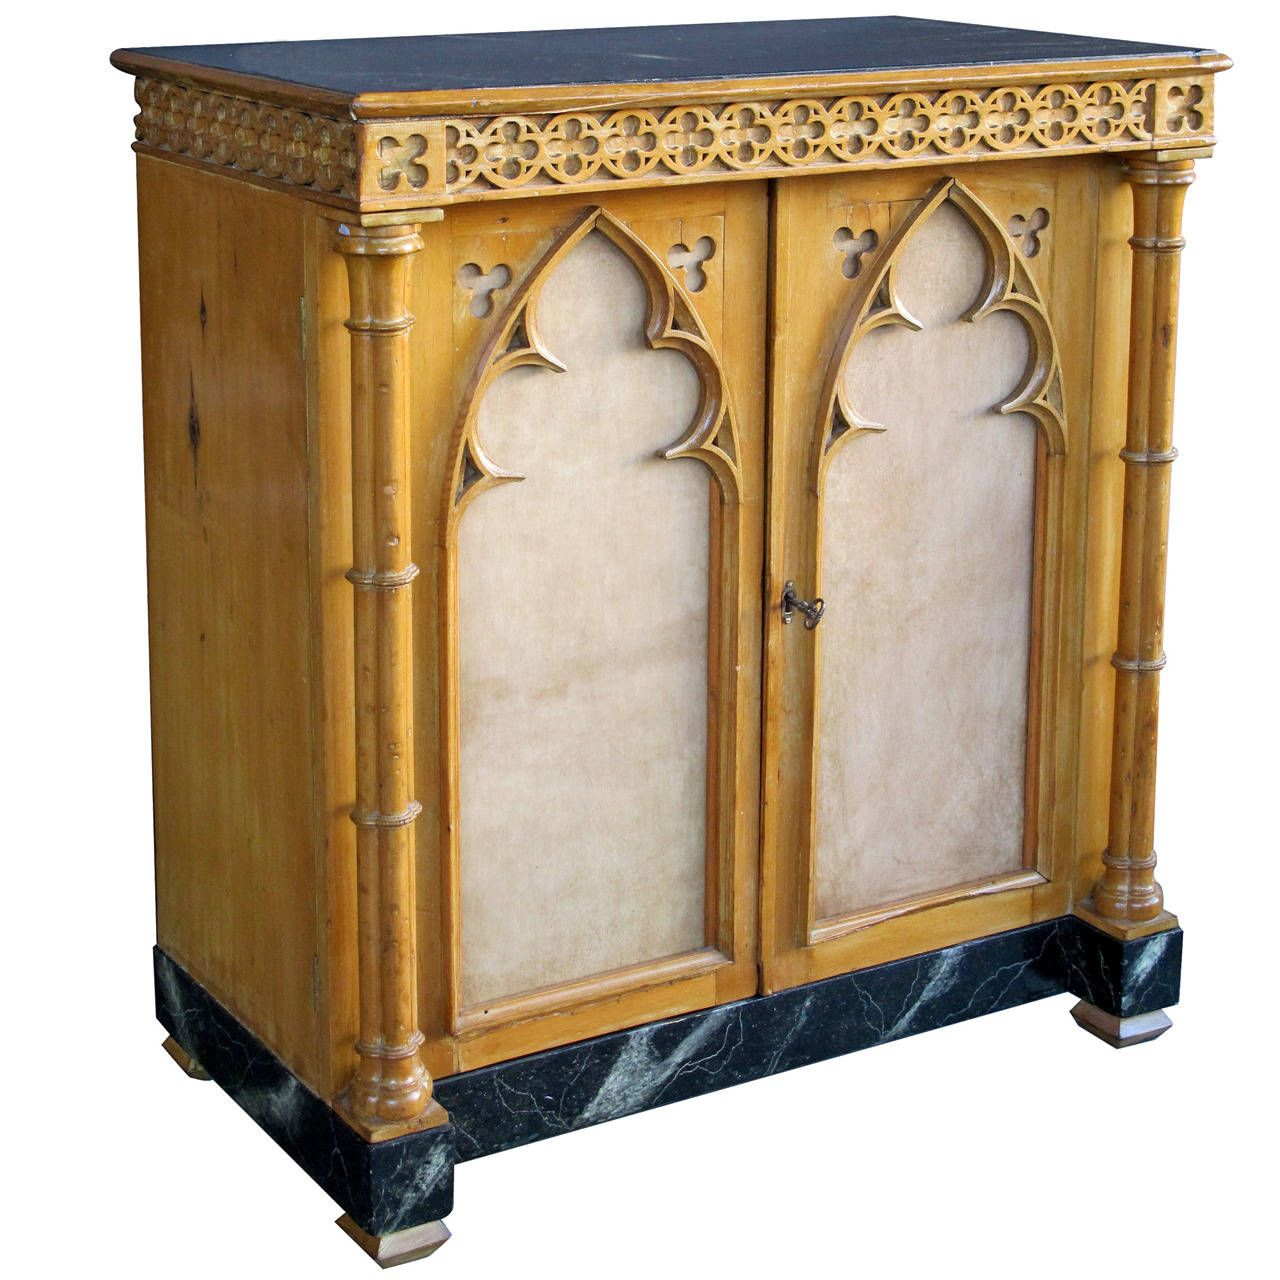 Pin by Tim Lehman on Gothic in 2020 Gothic furniture